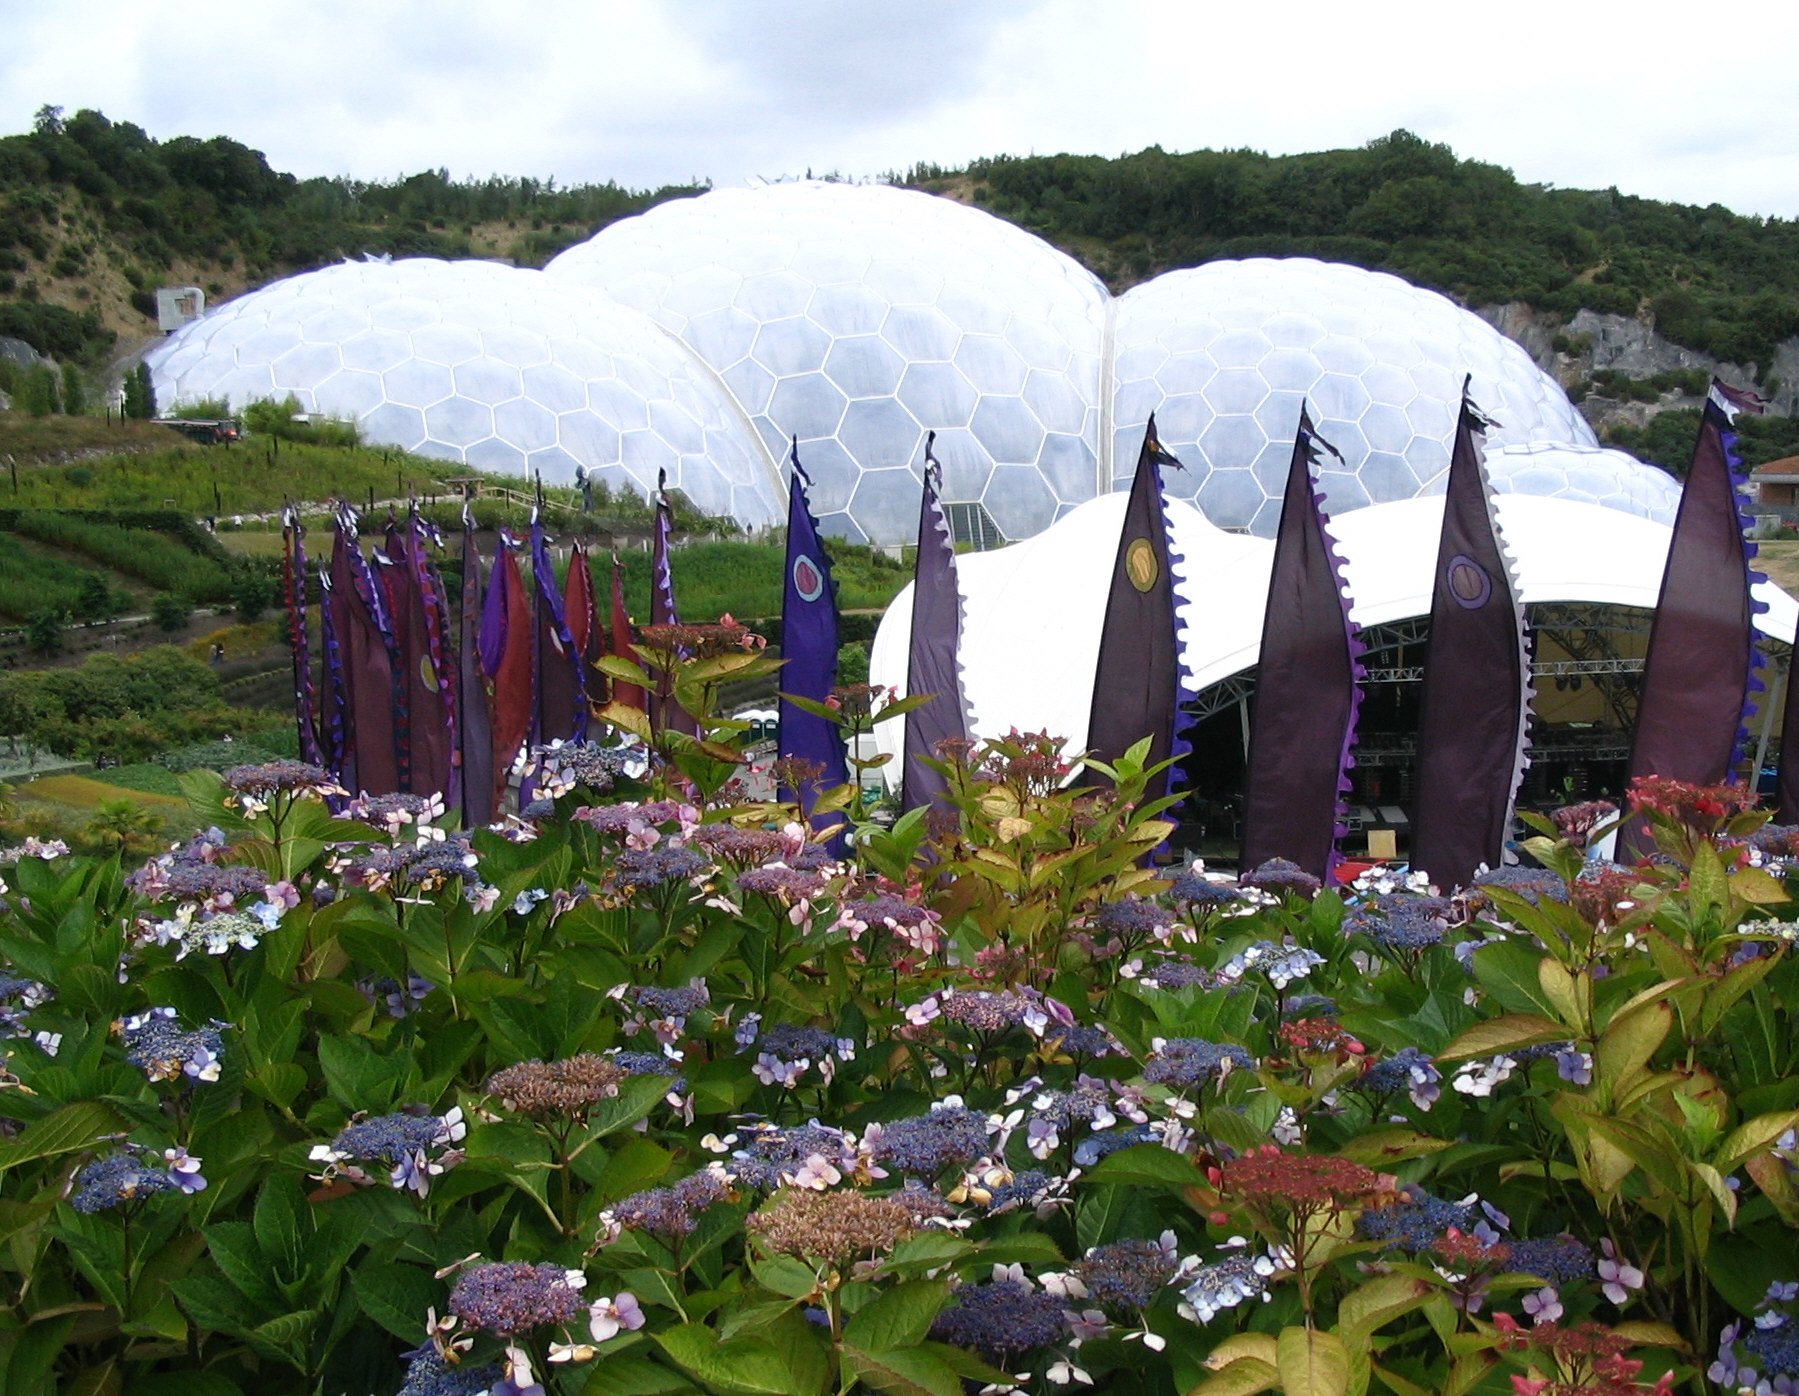 The Eden Project, Cornwall's largest tourist attraction in terms of visitor numbers